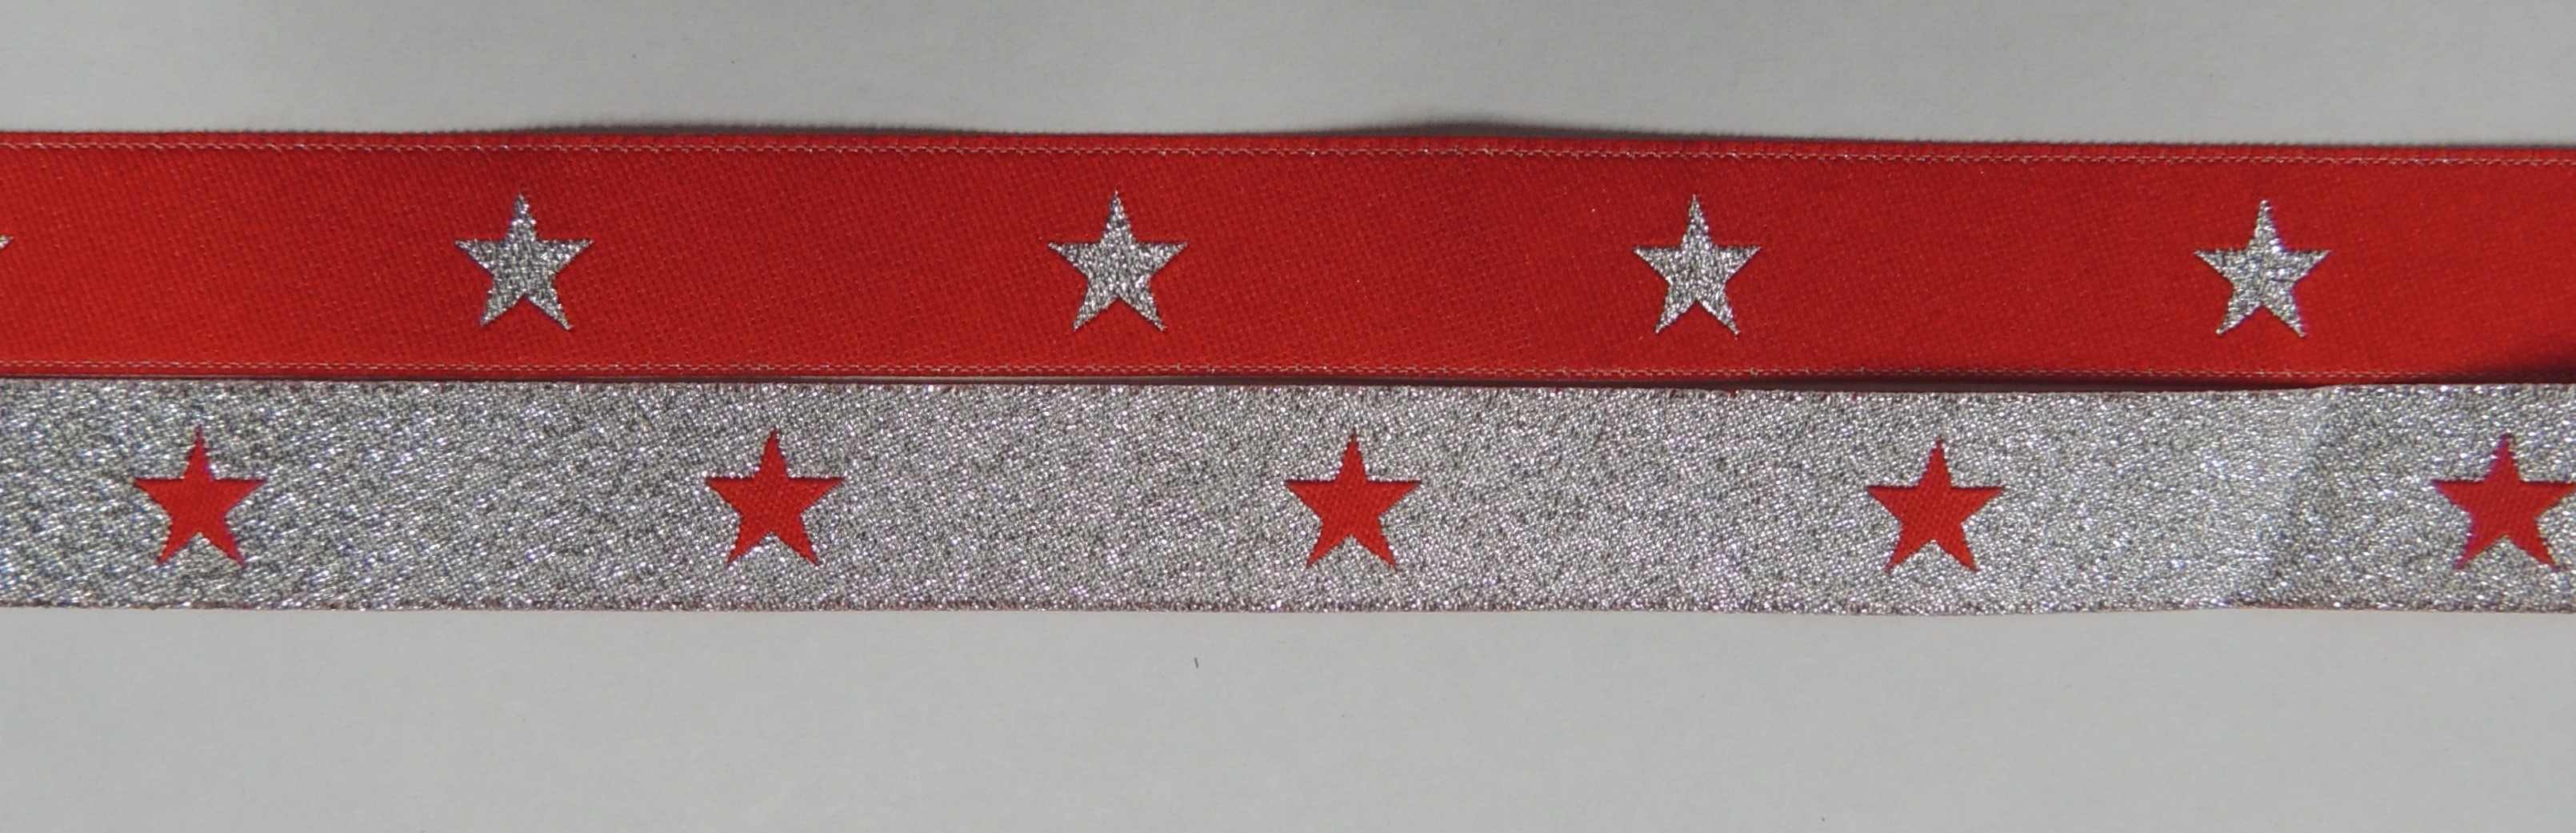 Red with Metallic Silver stars/ Metallic Silver with Red stars